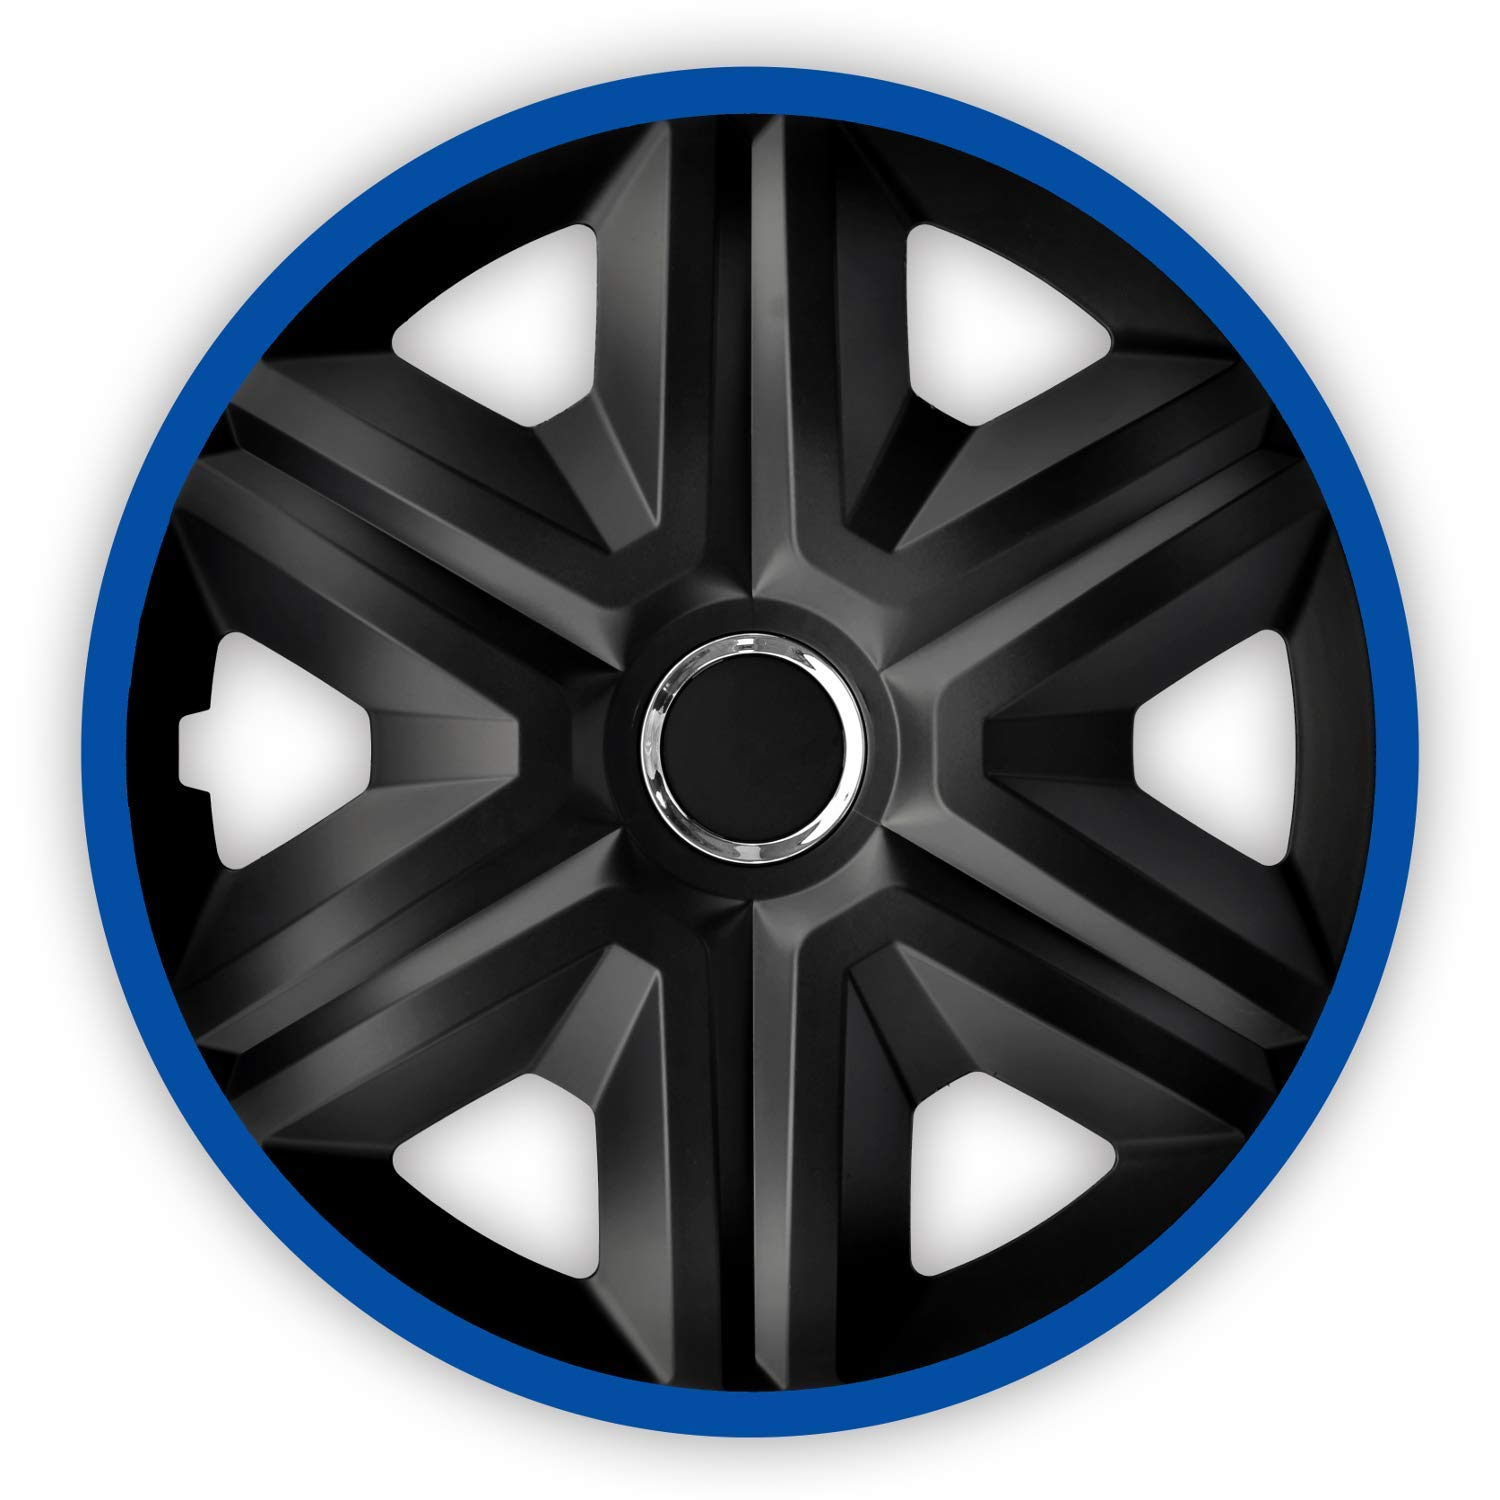 FAST LUX//ACTION 15 Inch Set Of 4 Luckyberg Wheel Trims Universal Fit For Cars And Other Vehicles